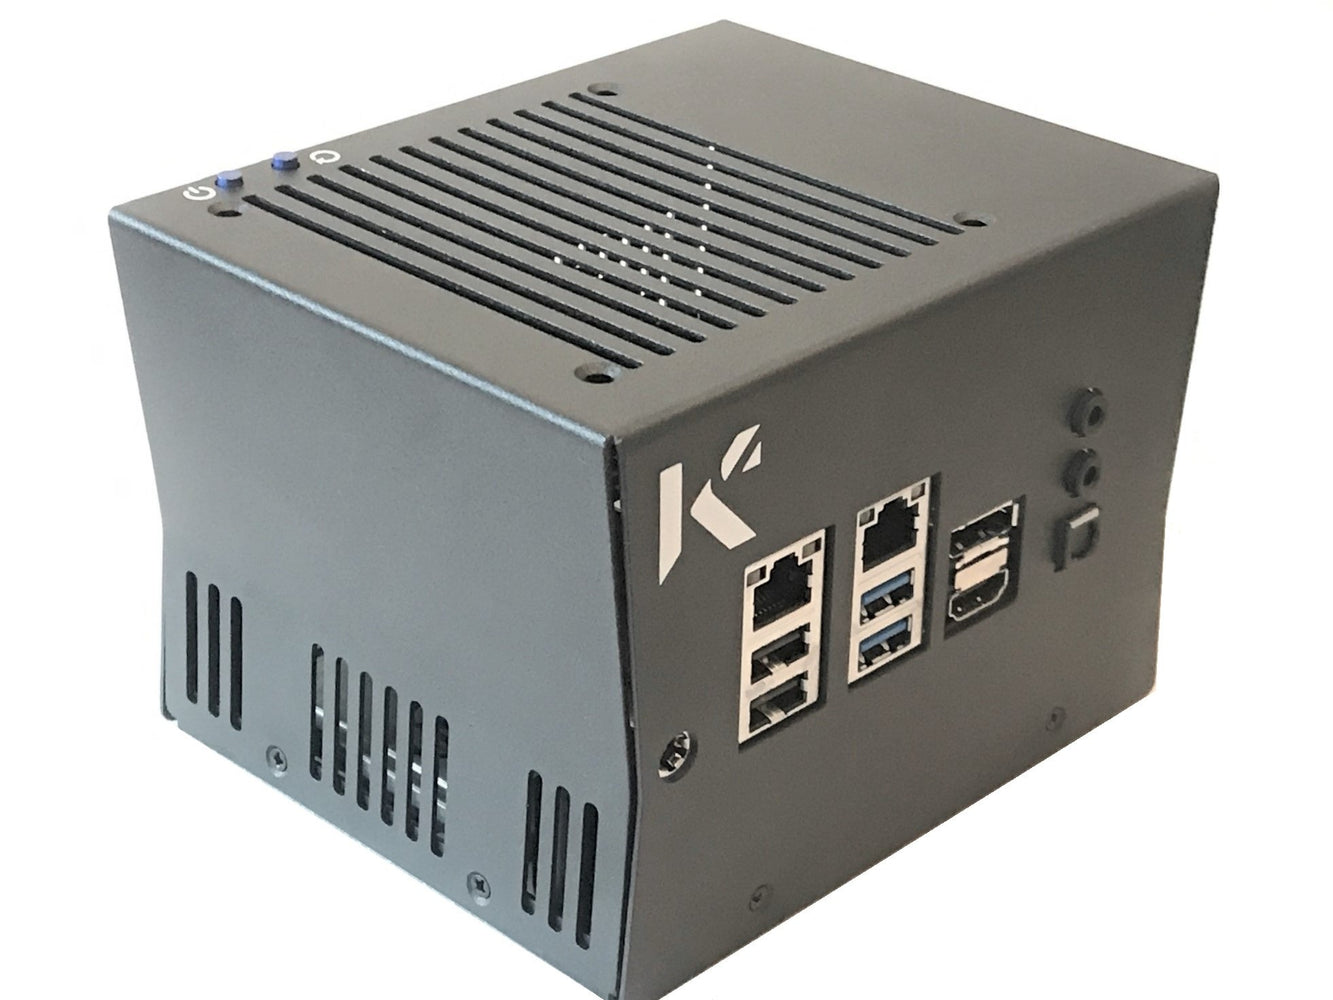 KKSB Metal Case for ODROID H2